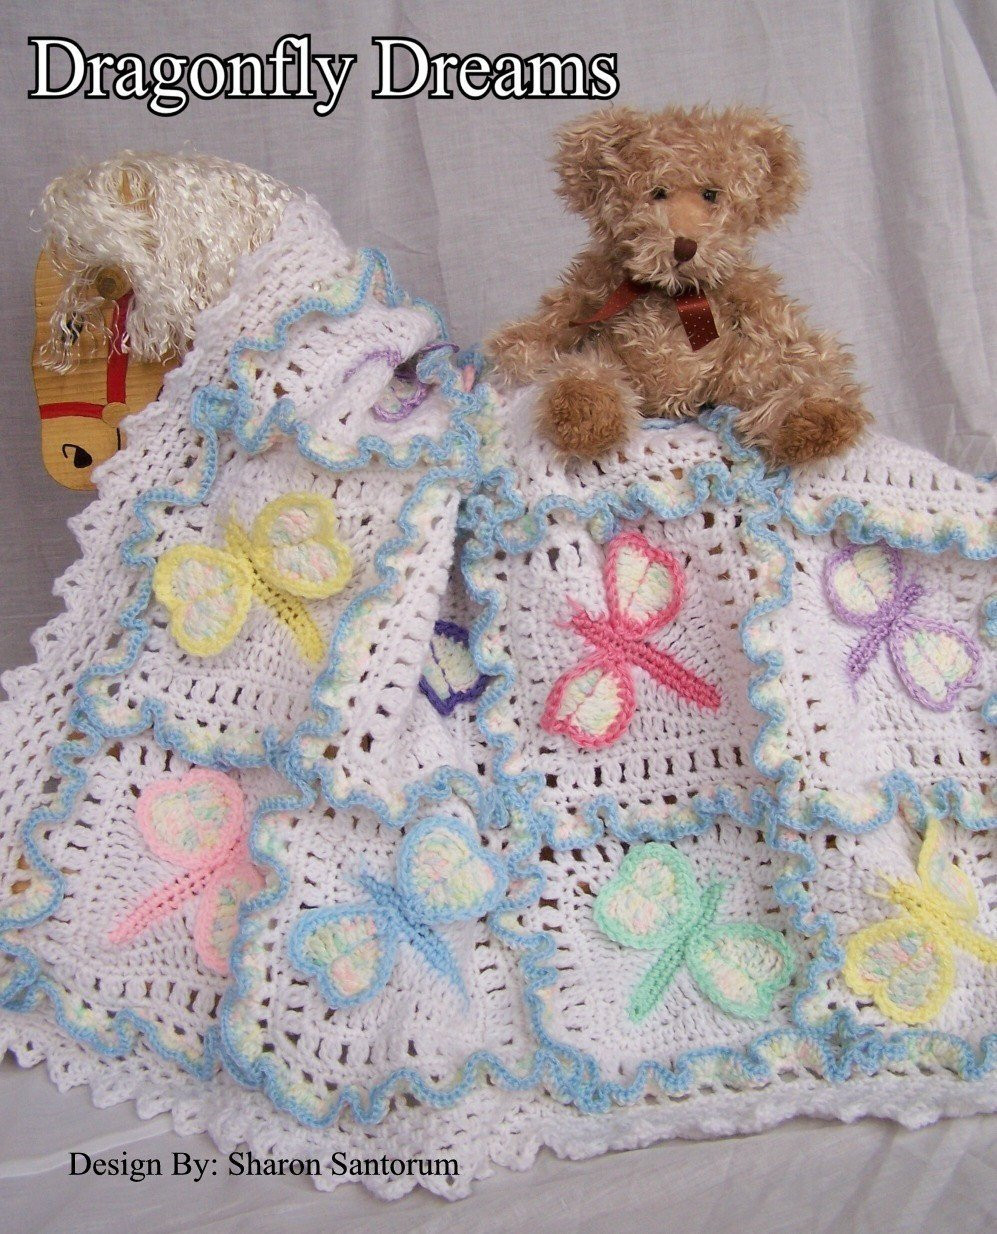 Crochet Baby Blanket Patterns for Beginners Luxury Baby Blanket Crocheted Free Pattern Crochet — Learn How Of Innovative 45 Pics Crochet Baby Blanket Patterns for Beginners